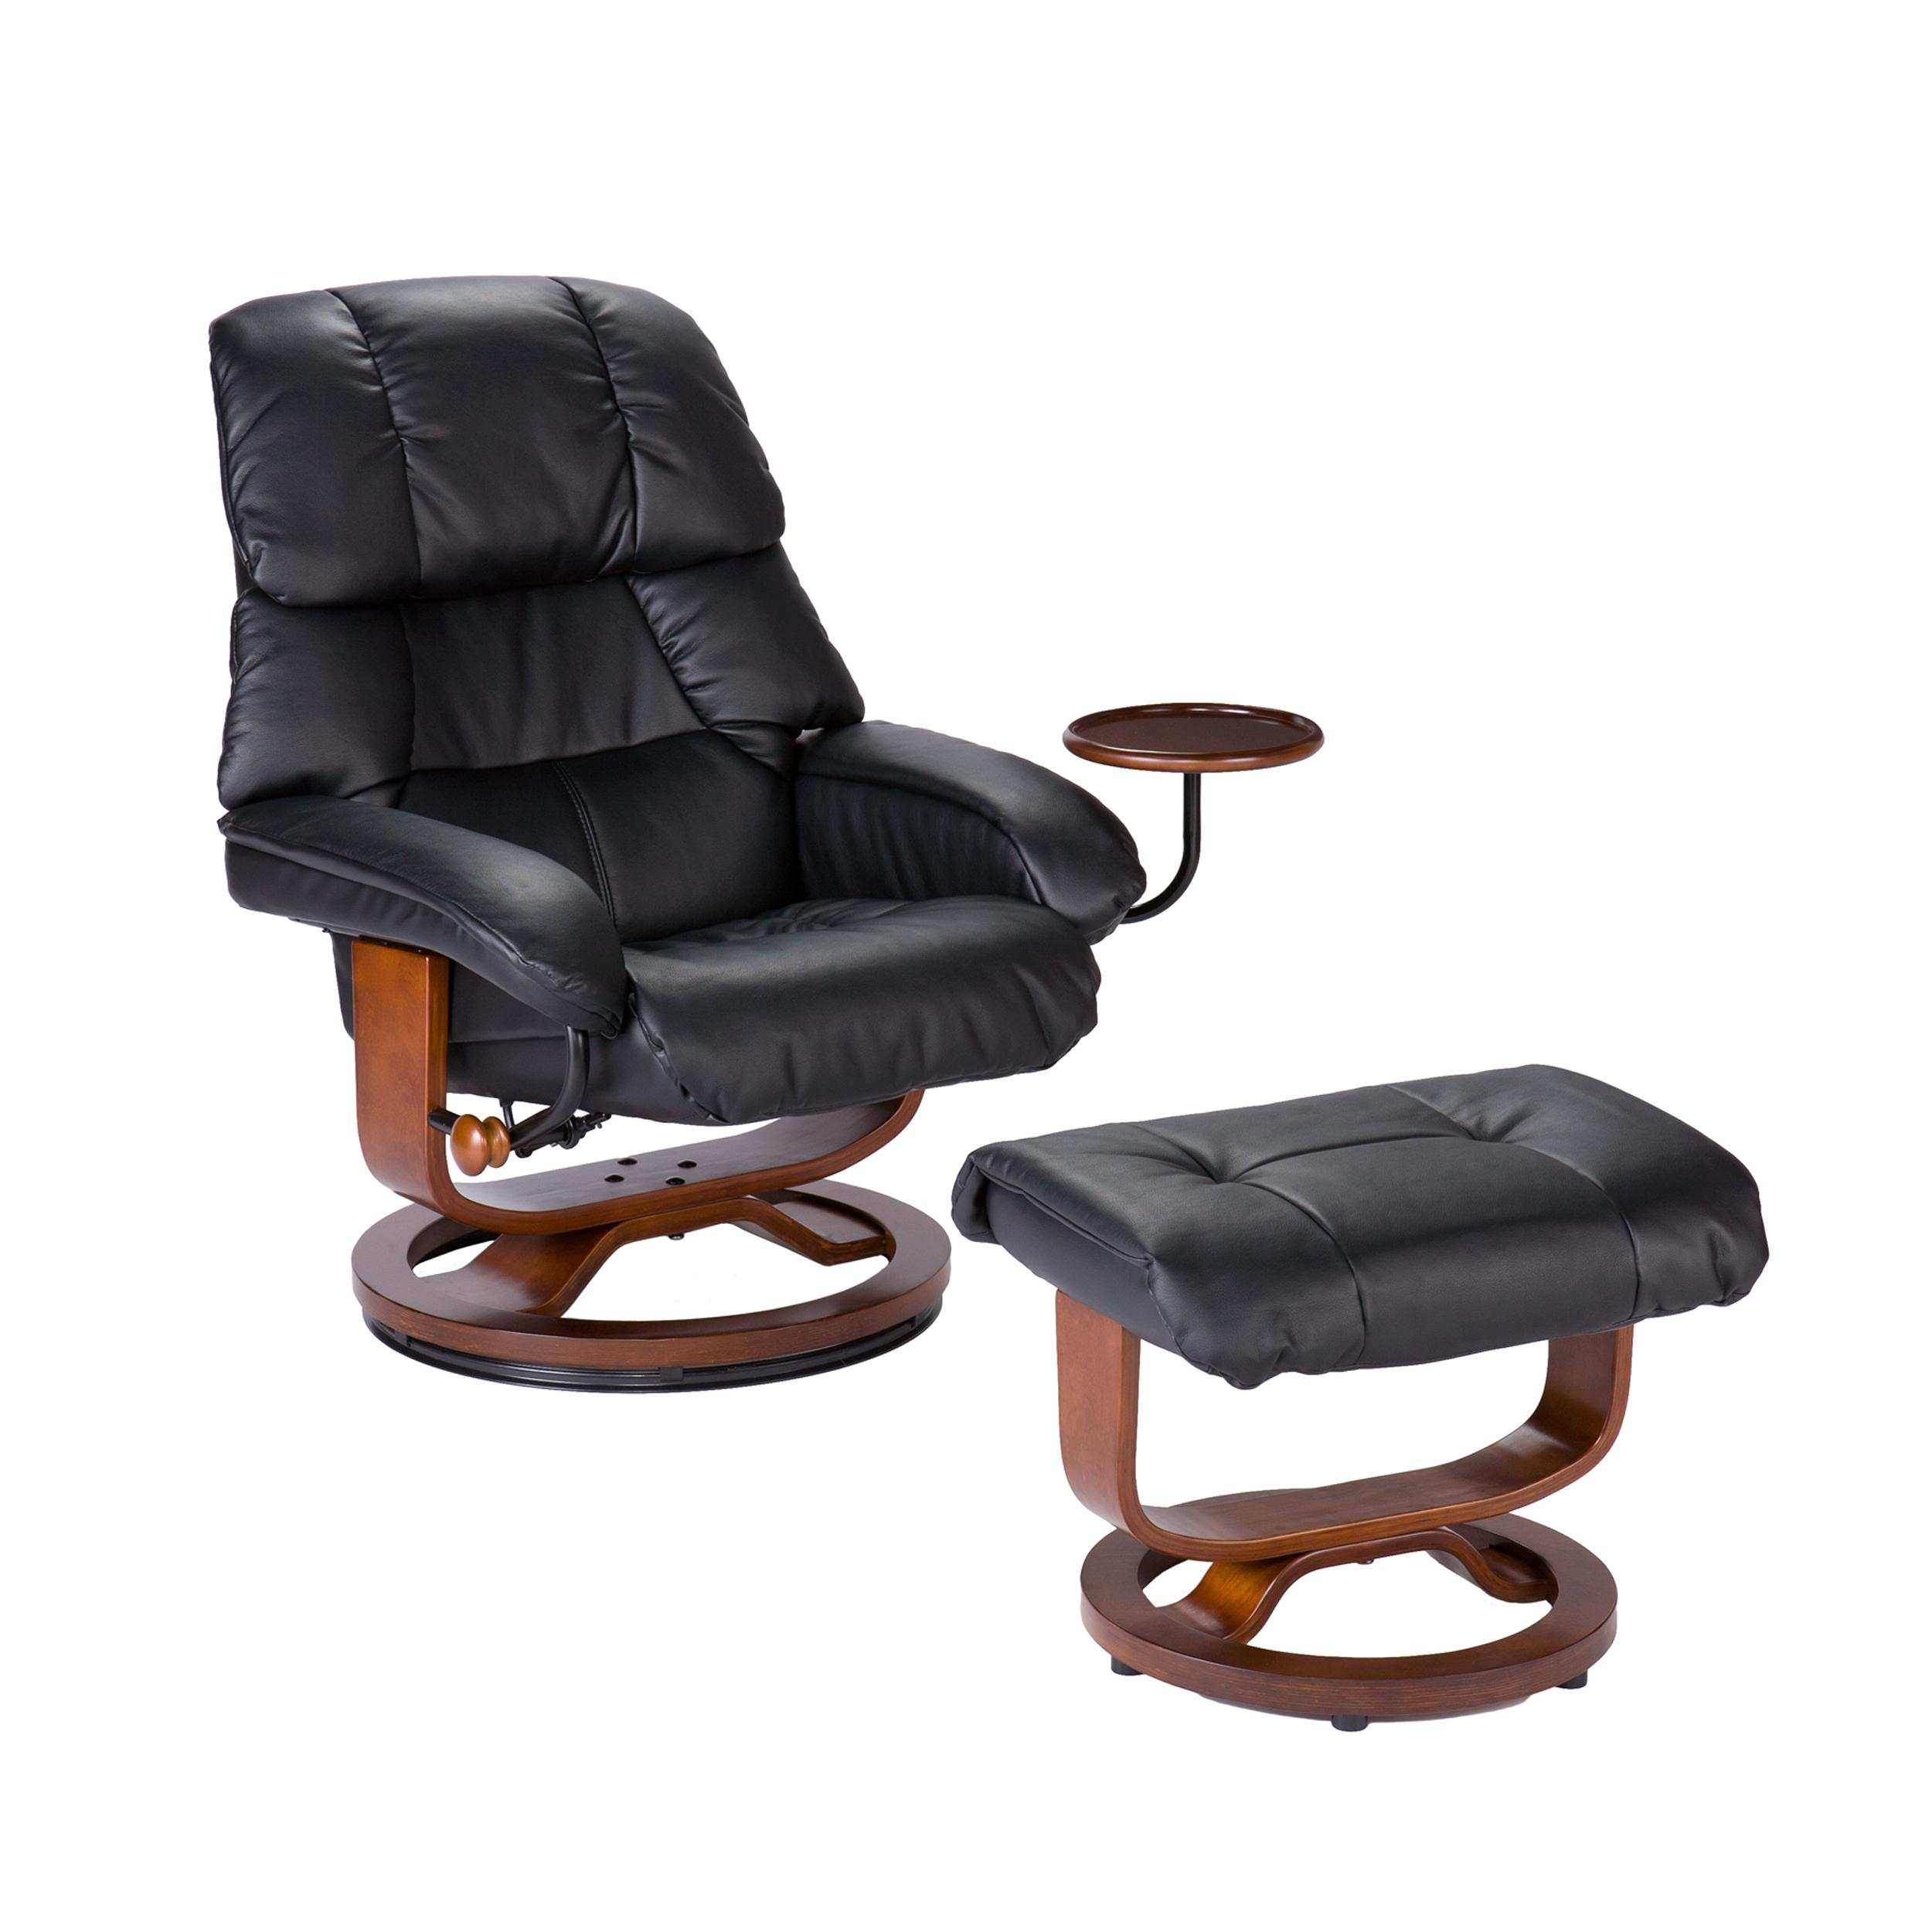 high back leather recliner and ottoman in black